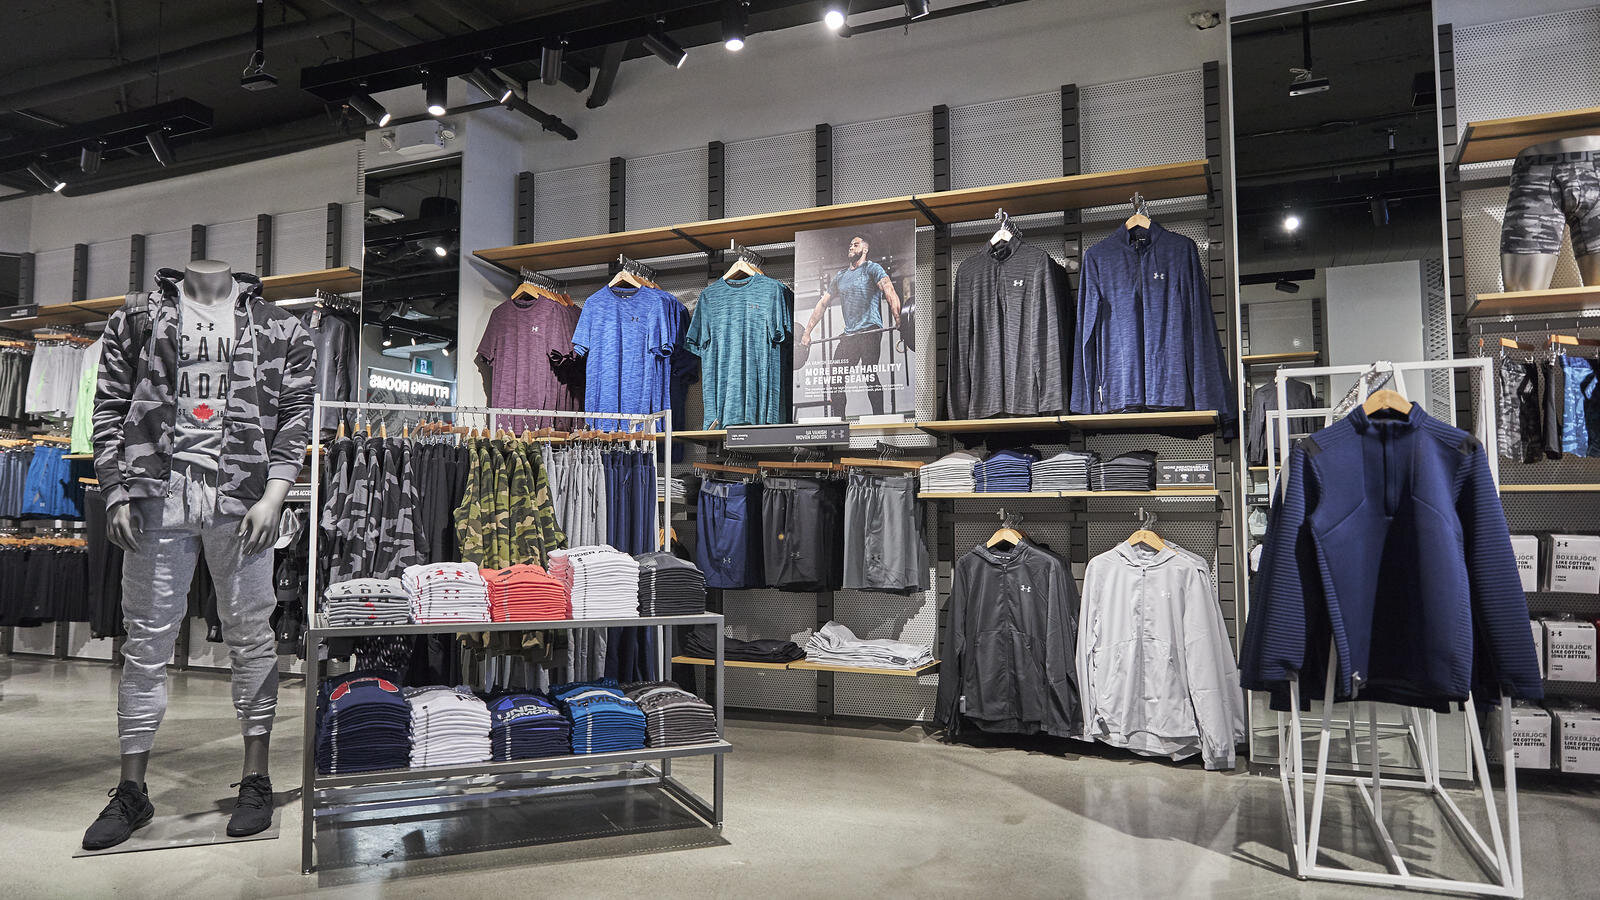 compresión autobús Hito  Sportswear Brand 'Under Armour' Launches Canadian Store Expansion with 1st  Location [Photos]